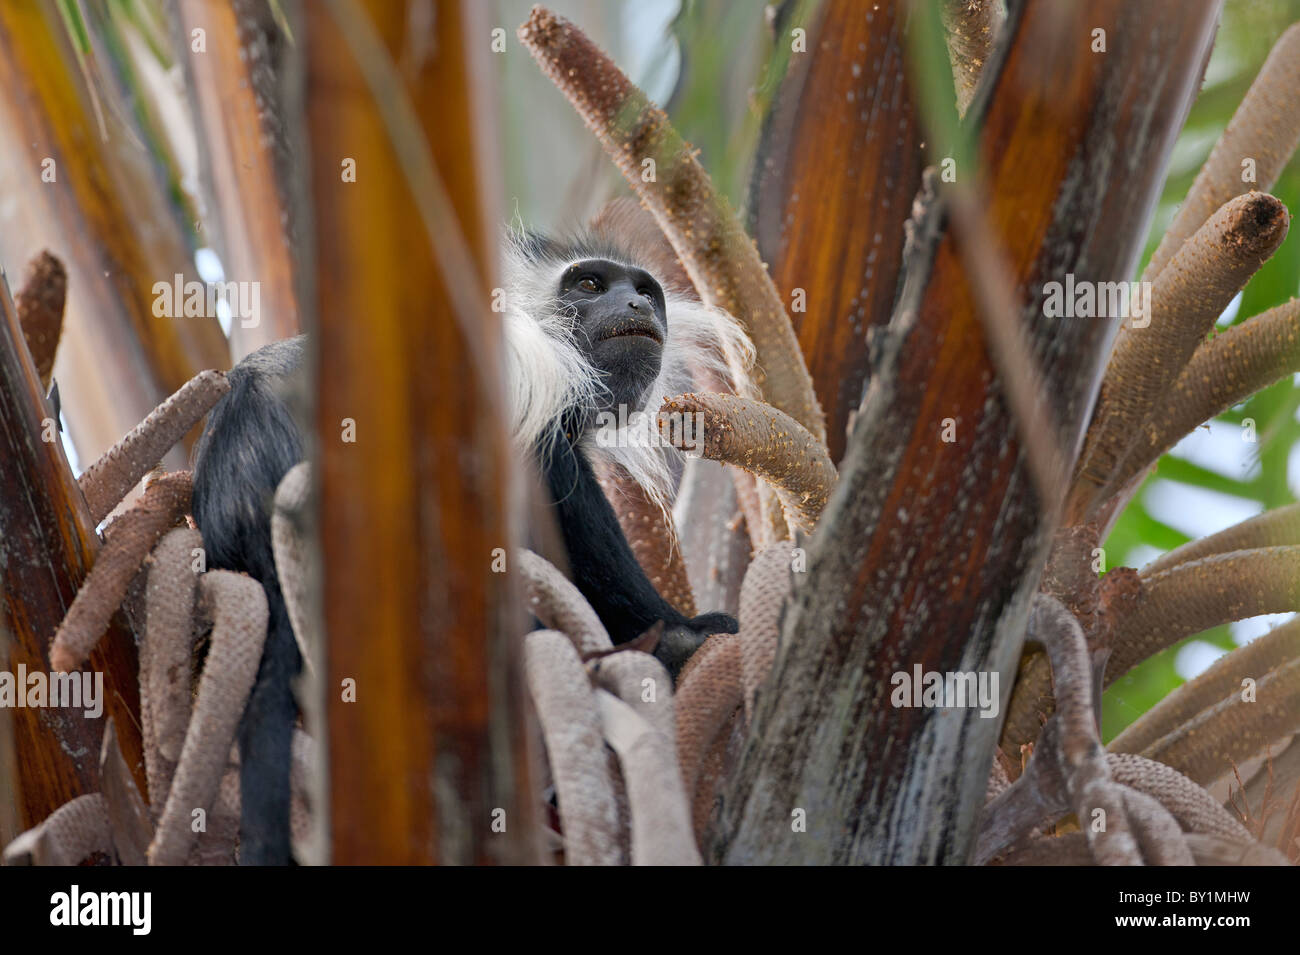 An Angola Pied Colobus feeding in a Raffia palm in Selous Game Reserve. - Stock Image